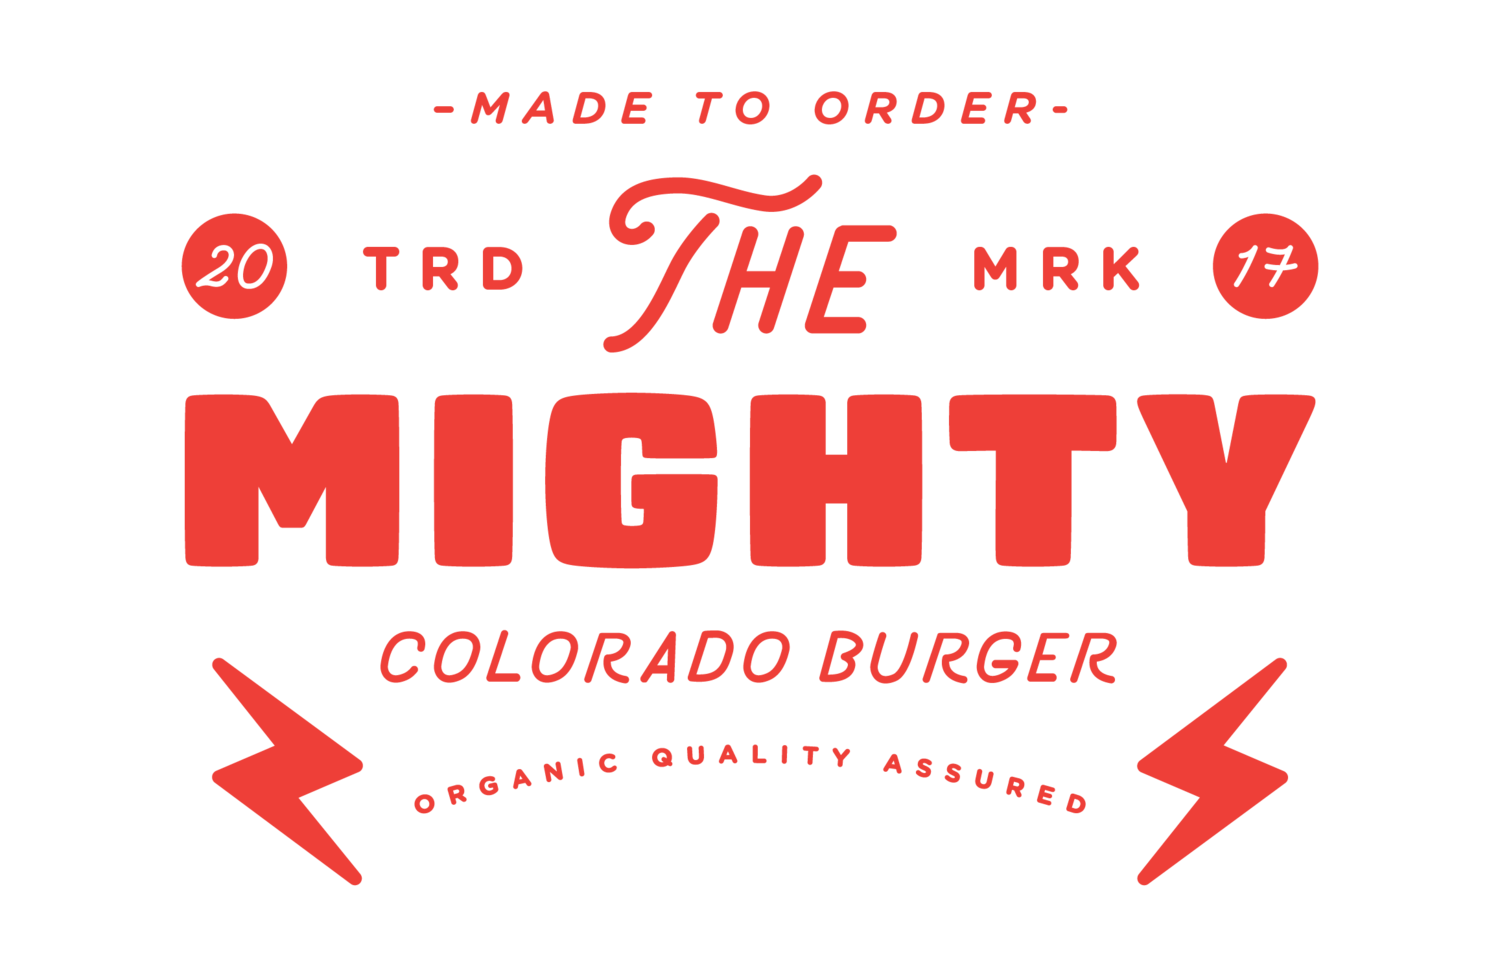 The Mighty Colorado Burger